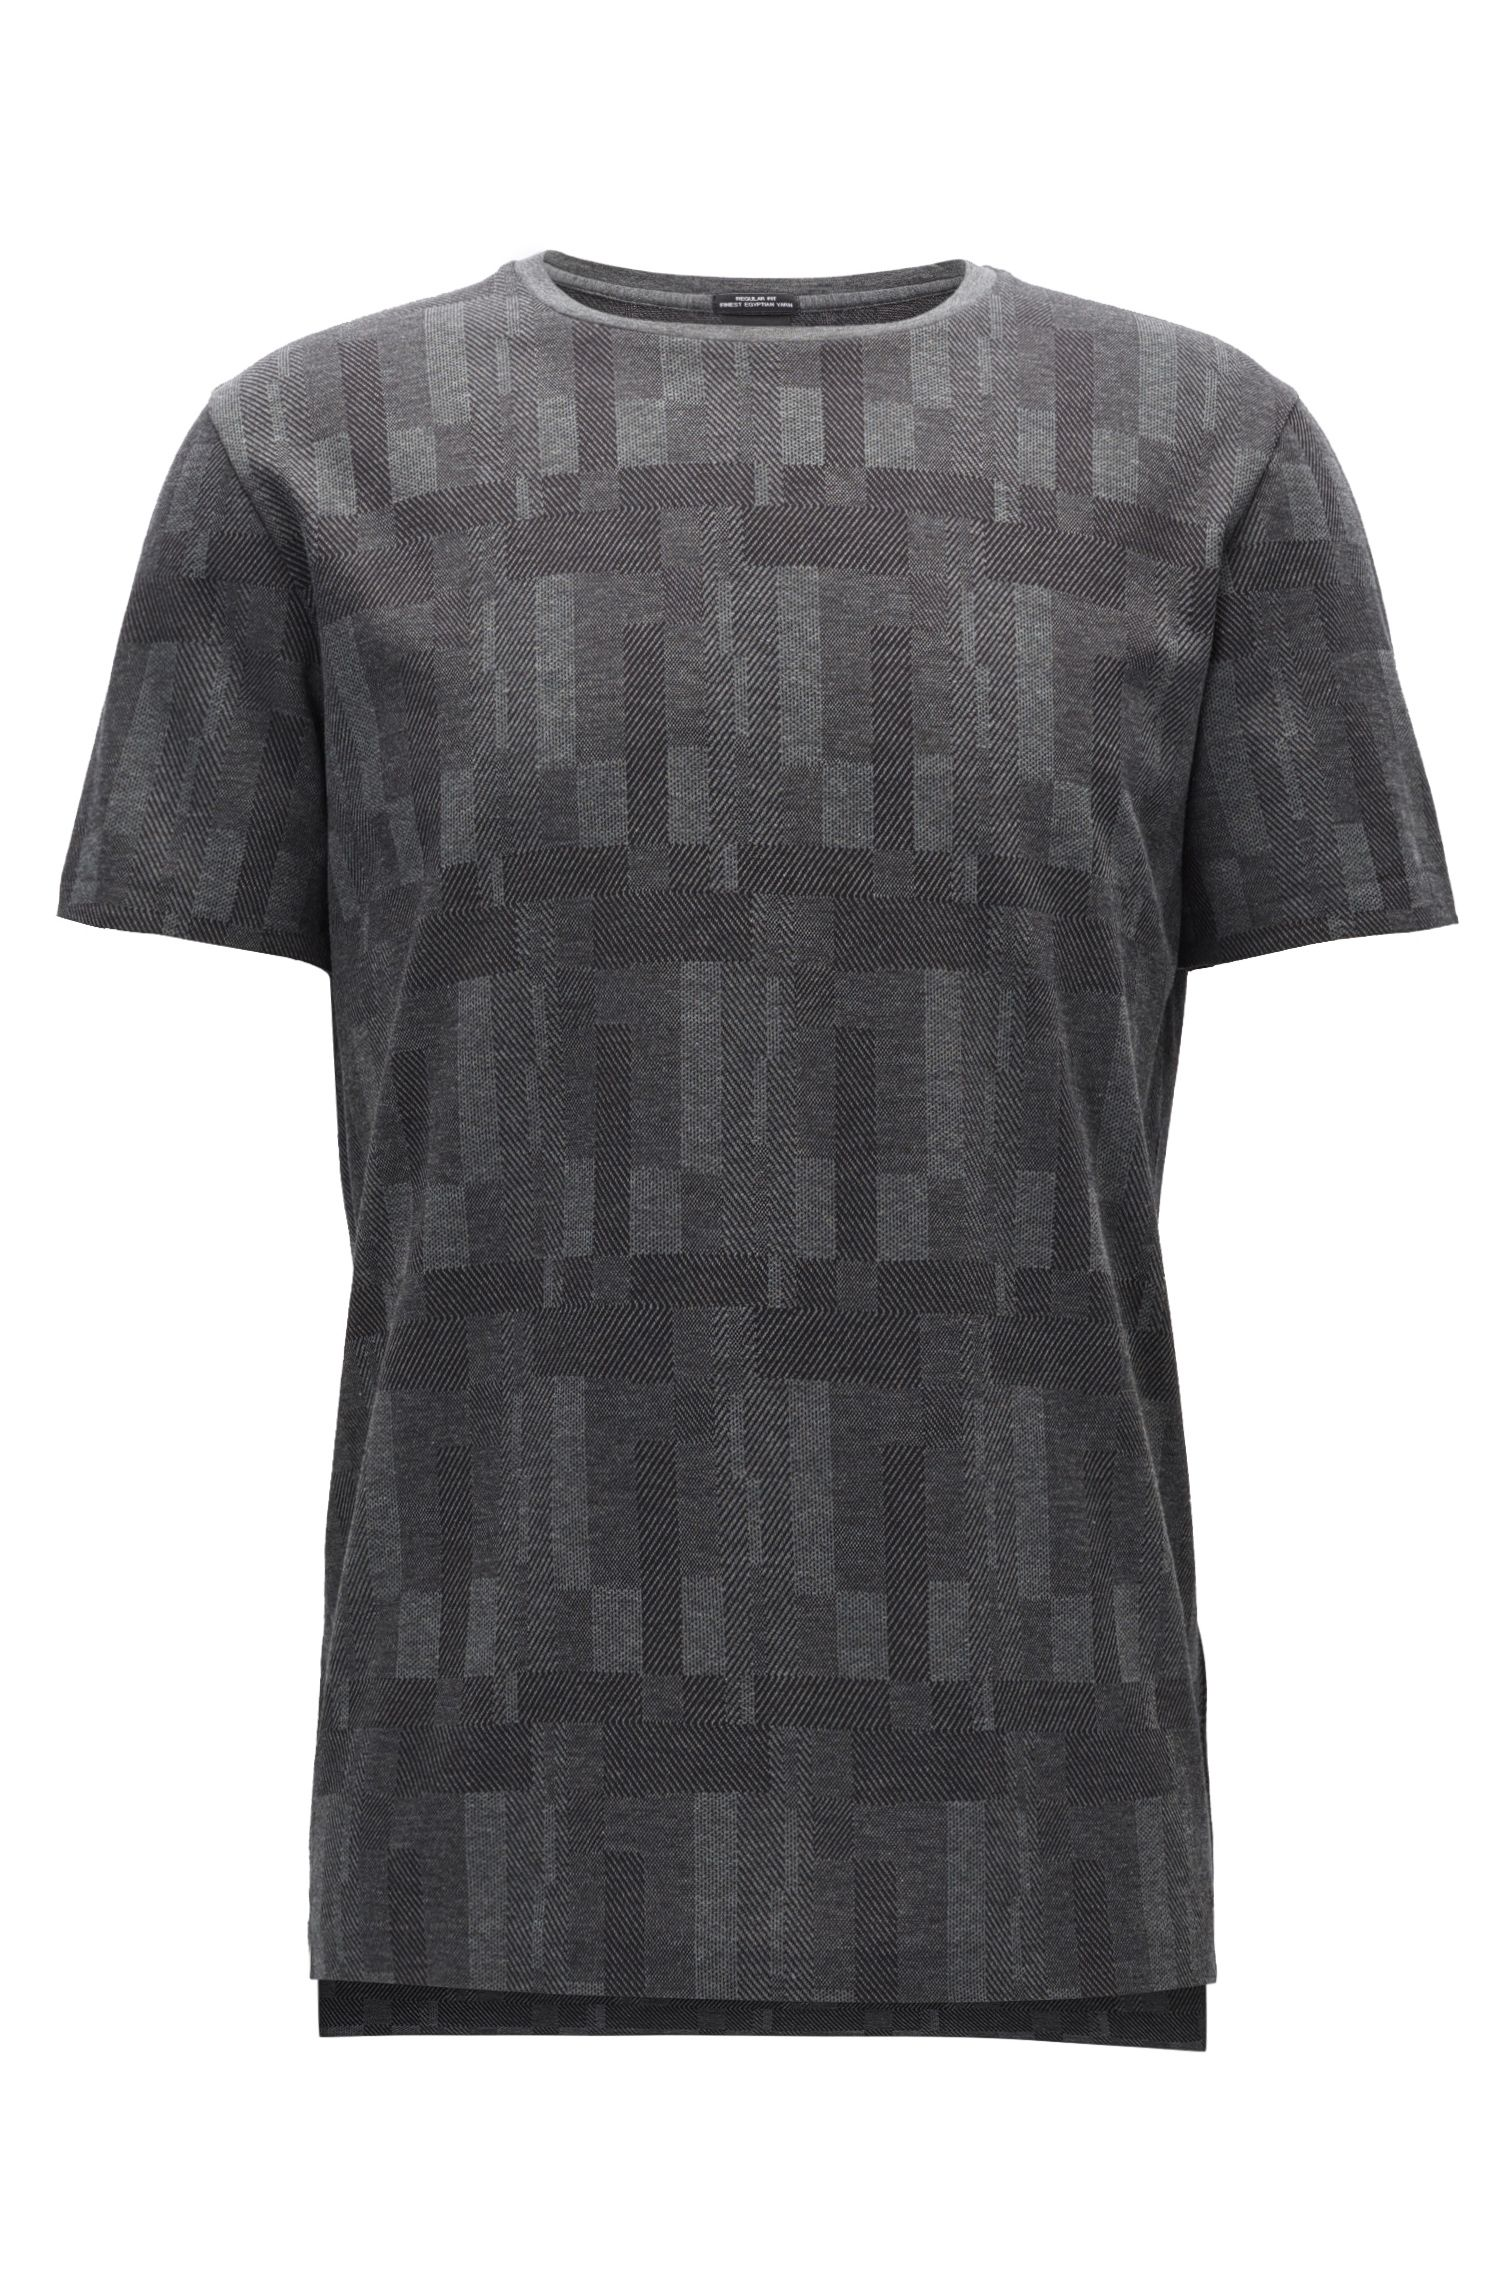 Patterned Egyptian Cotton T-Shirt | Tiburt, Grey